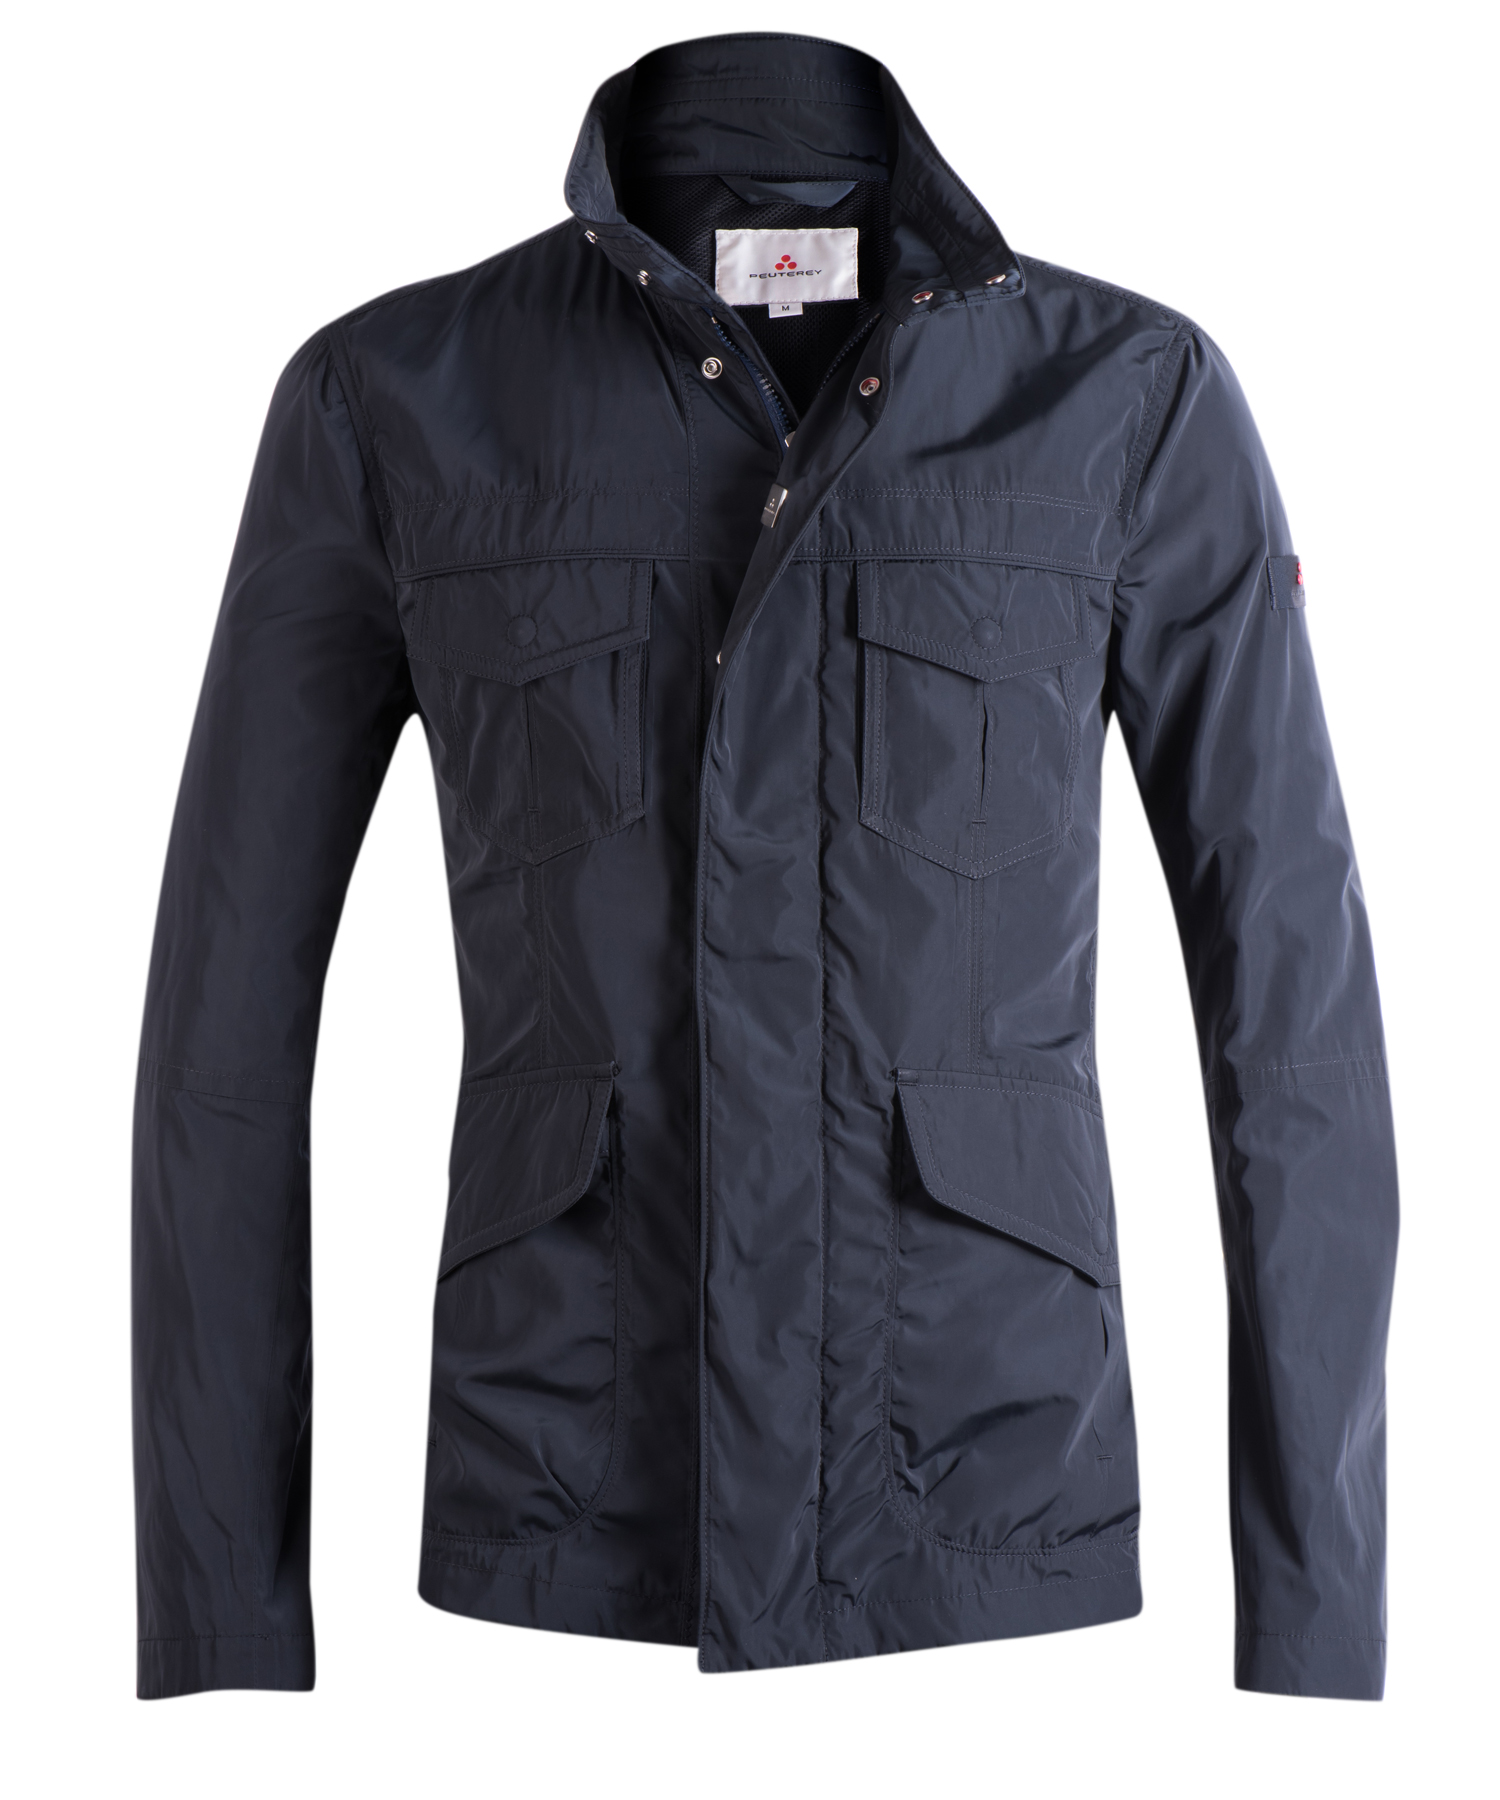 Uitgelezene Navy Peuterey Fieldjacket Model Metal - GB 215 Navy FT-71